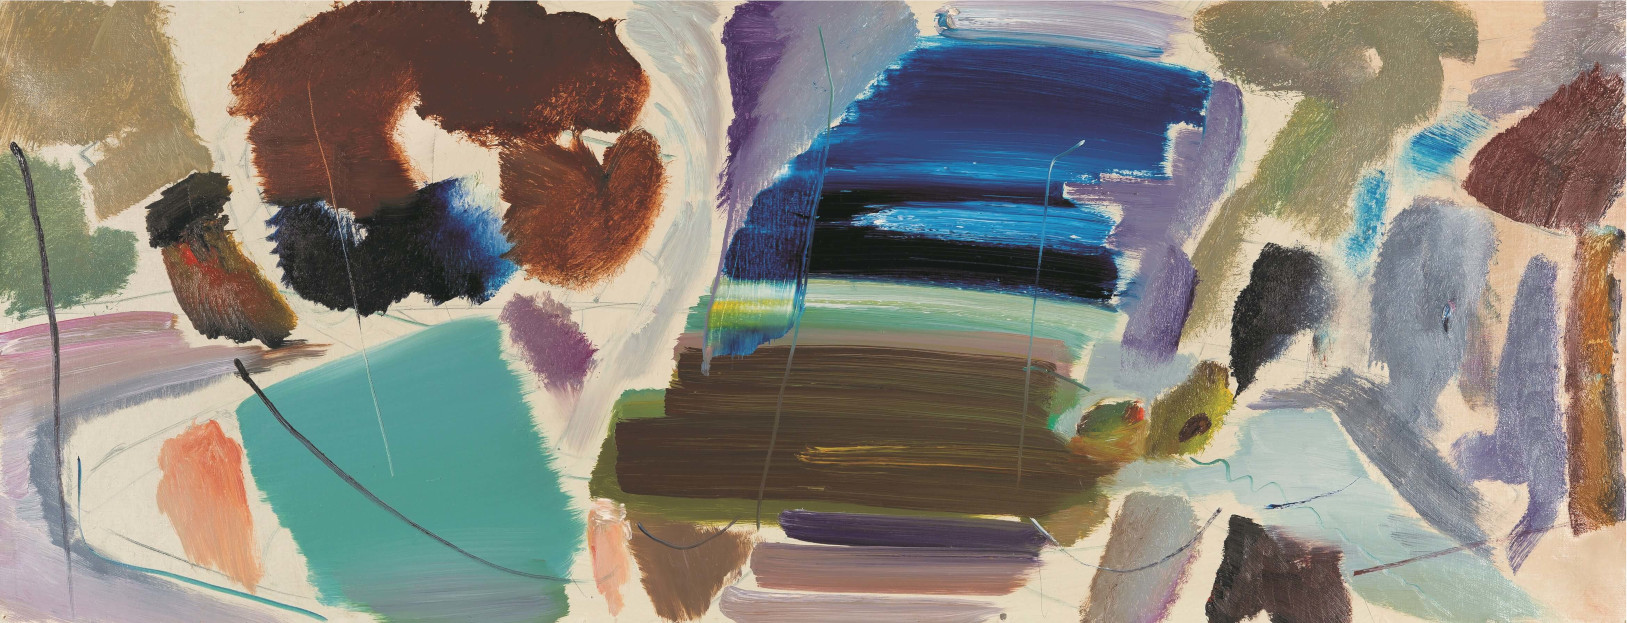 Roof Painting No.2 1977 by Ivon Hitchens